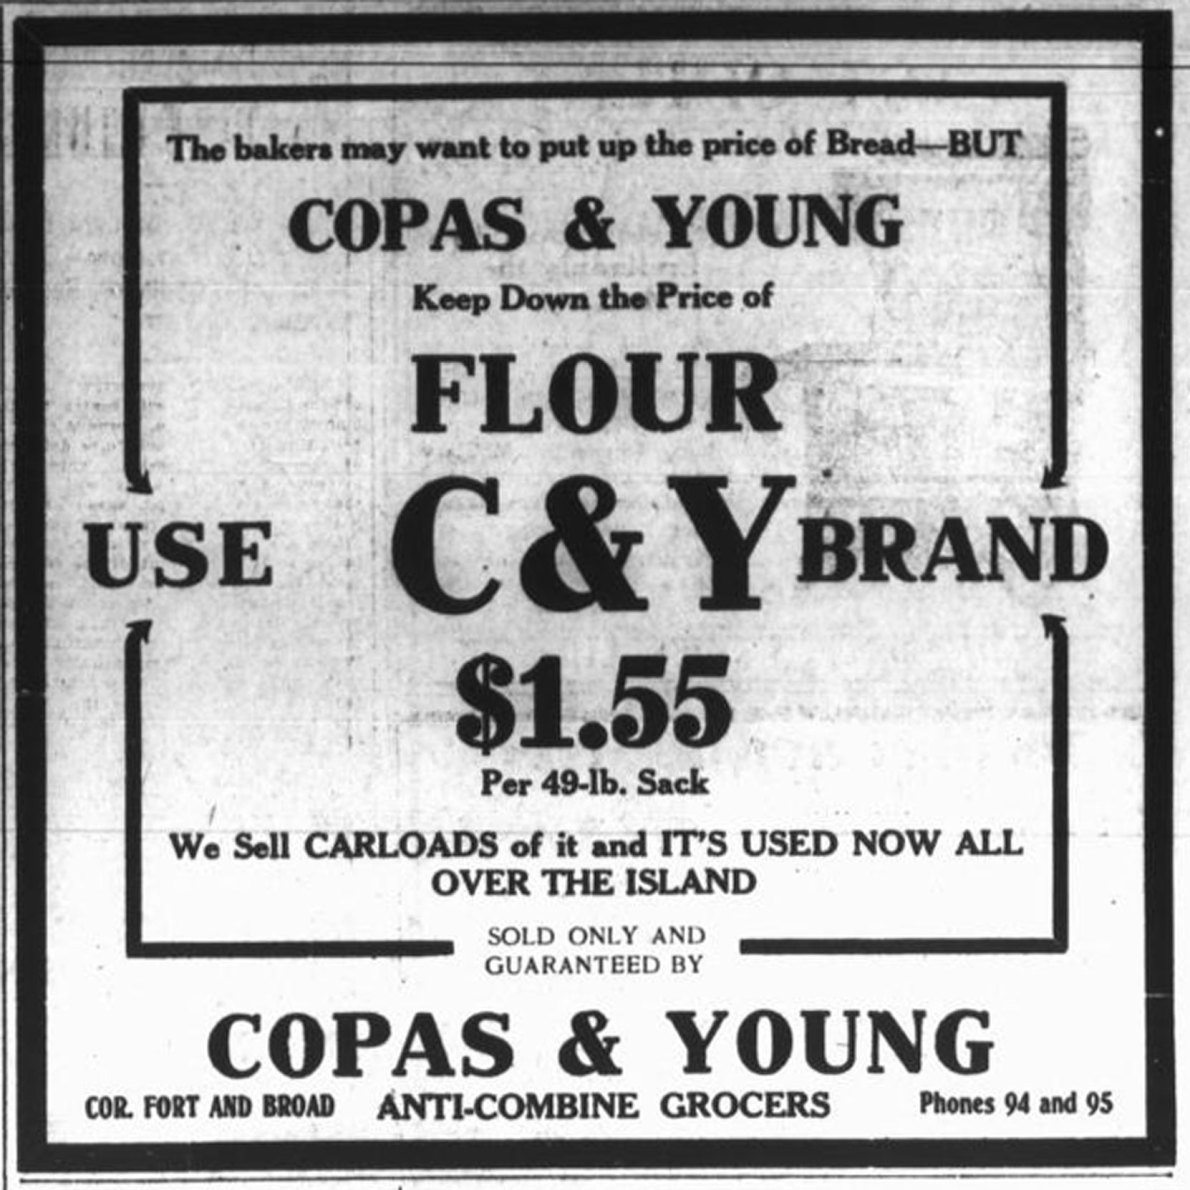 Copas & Young Anti-Combine Grocers, advertisement with prices, 1916. Copas & Young was in the Fell Building at the intersection of Fort Street and Broad Street (Victoria Online Sightseeing collection)